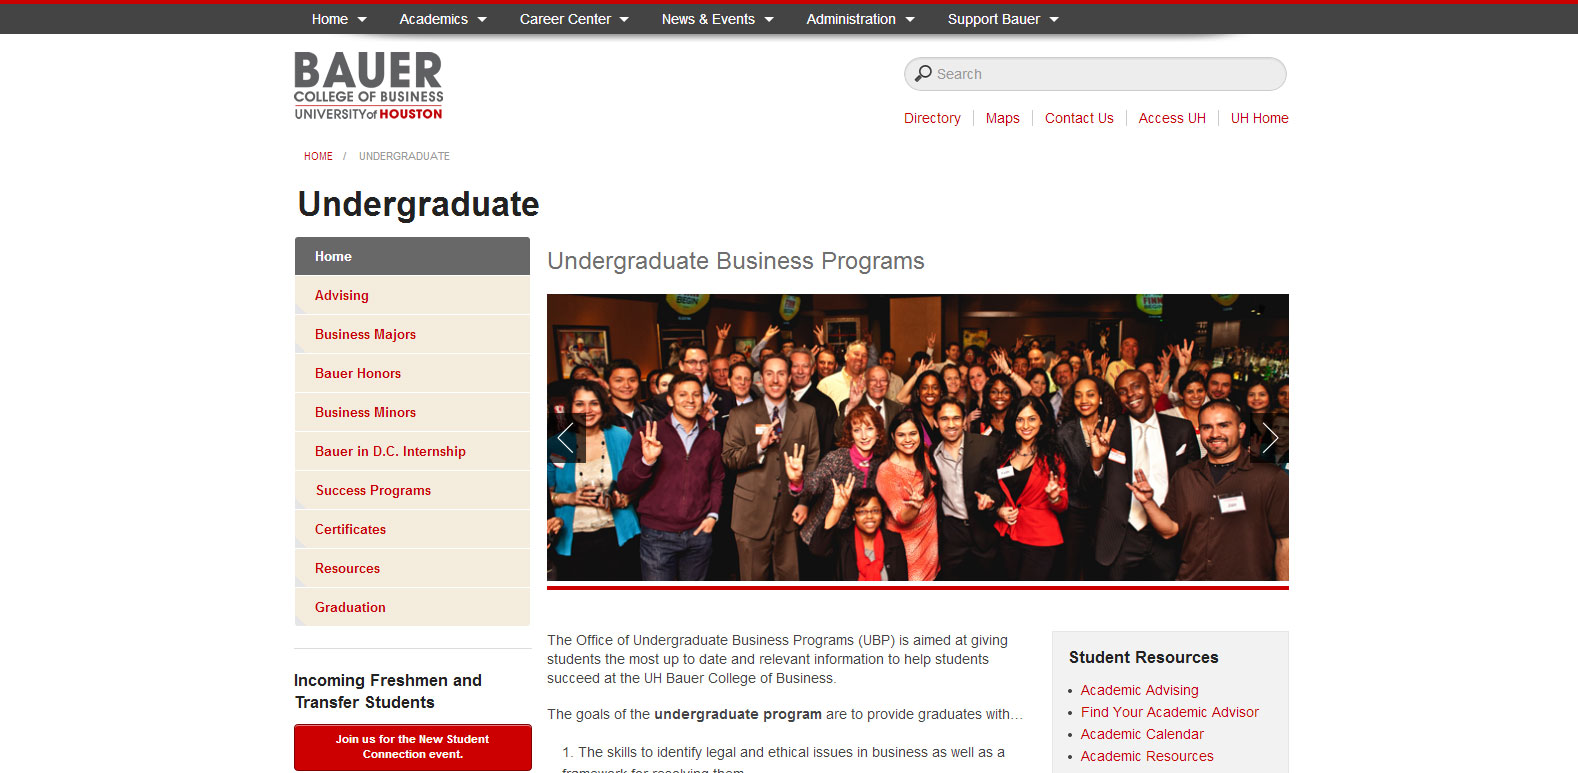 The new Undergraduate subsite is among more than 50 subsites that launched today with the new redesigned Bauer website.